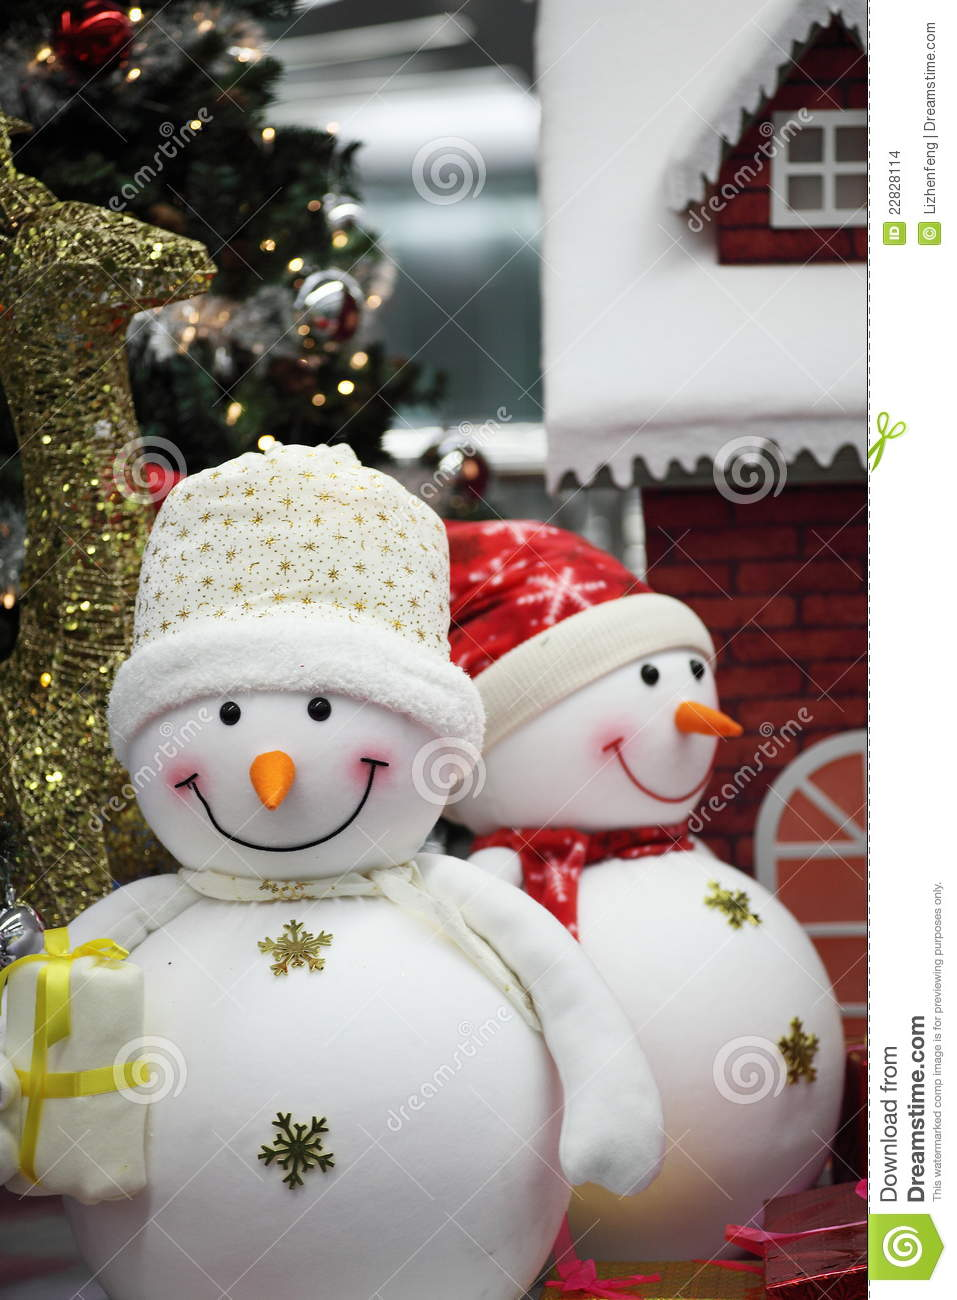 snowman for christmas decoration